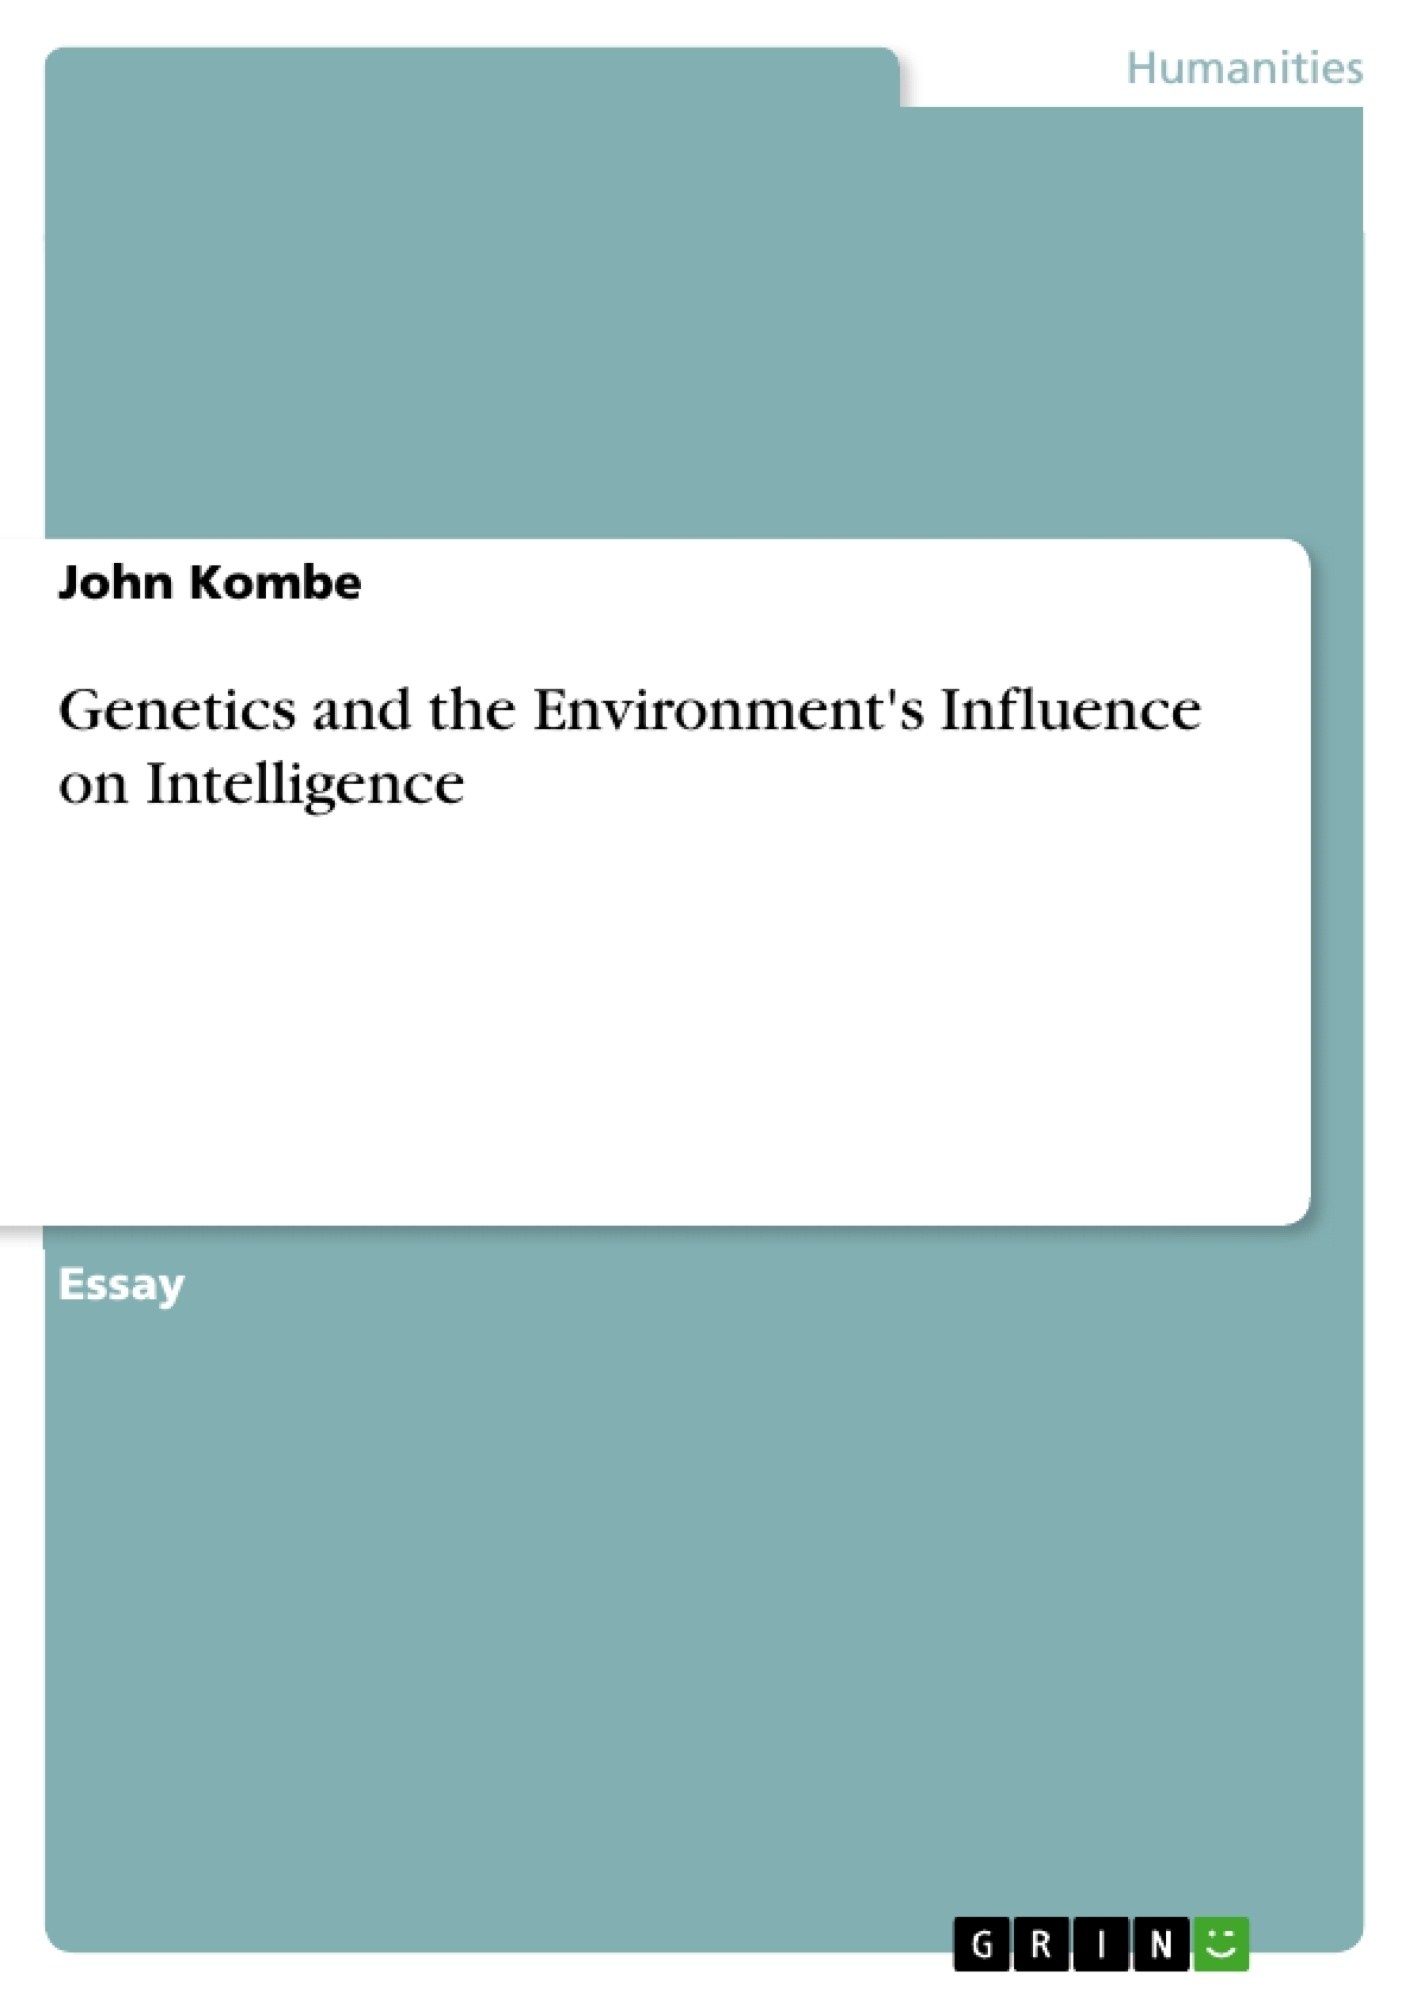 Title: Genetics and the Environment's Influence on Intelligence